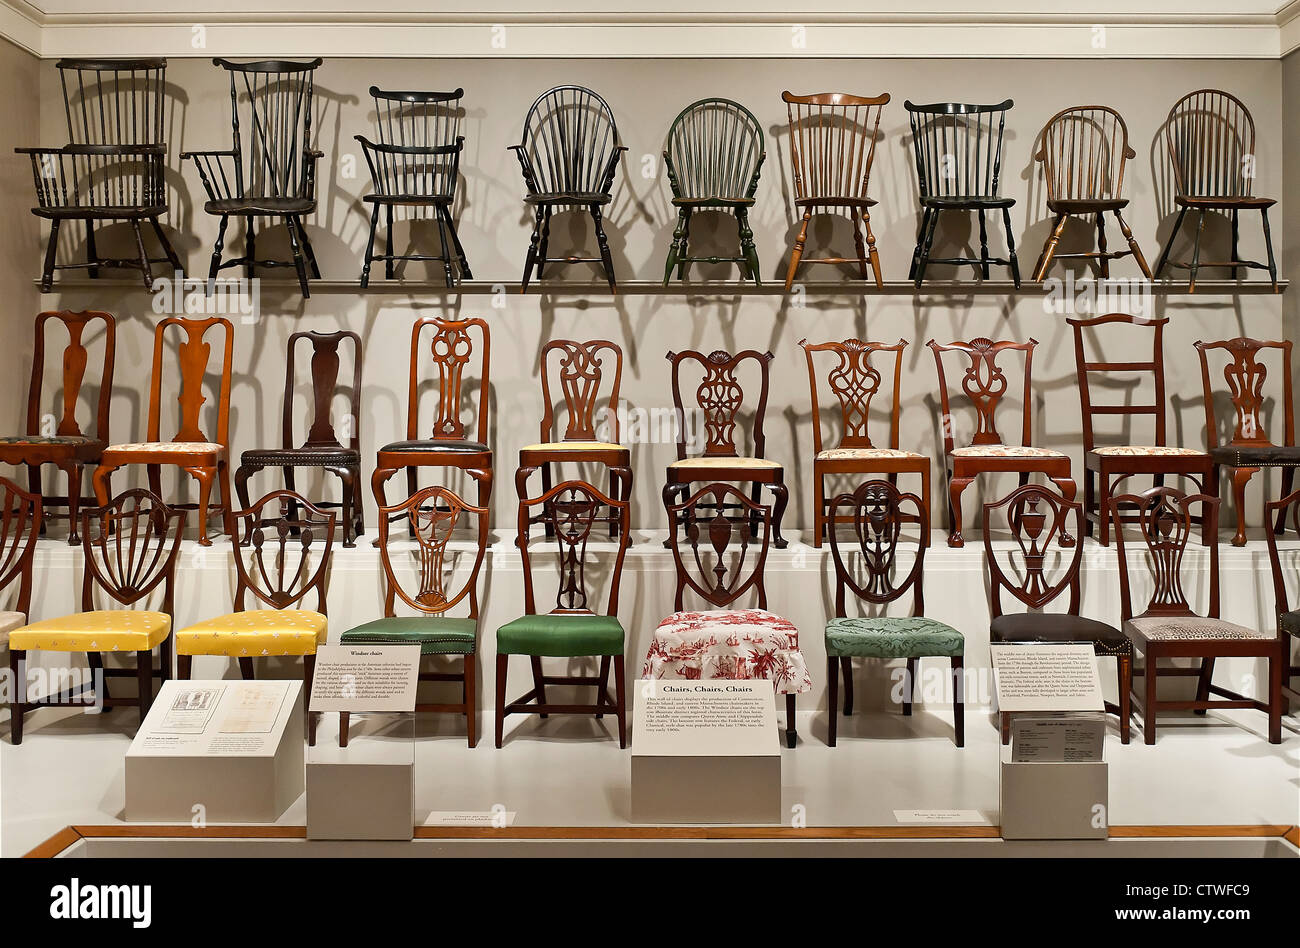 Chair exhibit, Winterthur decorative Arts Museum and Gardens, Delaware, USA - Stock Image